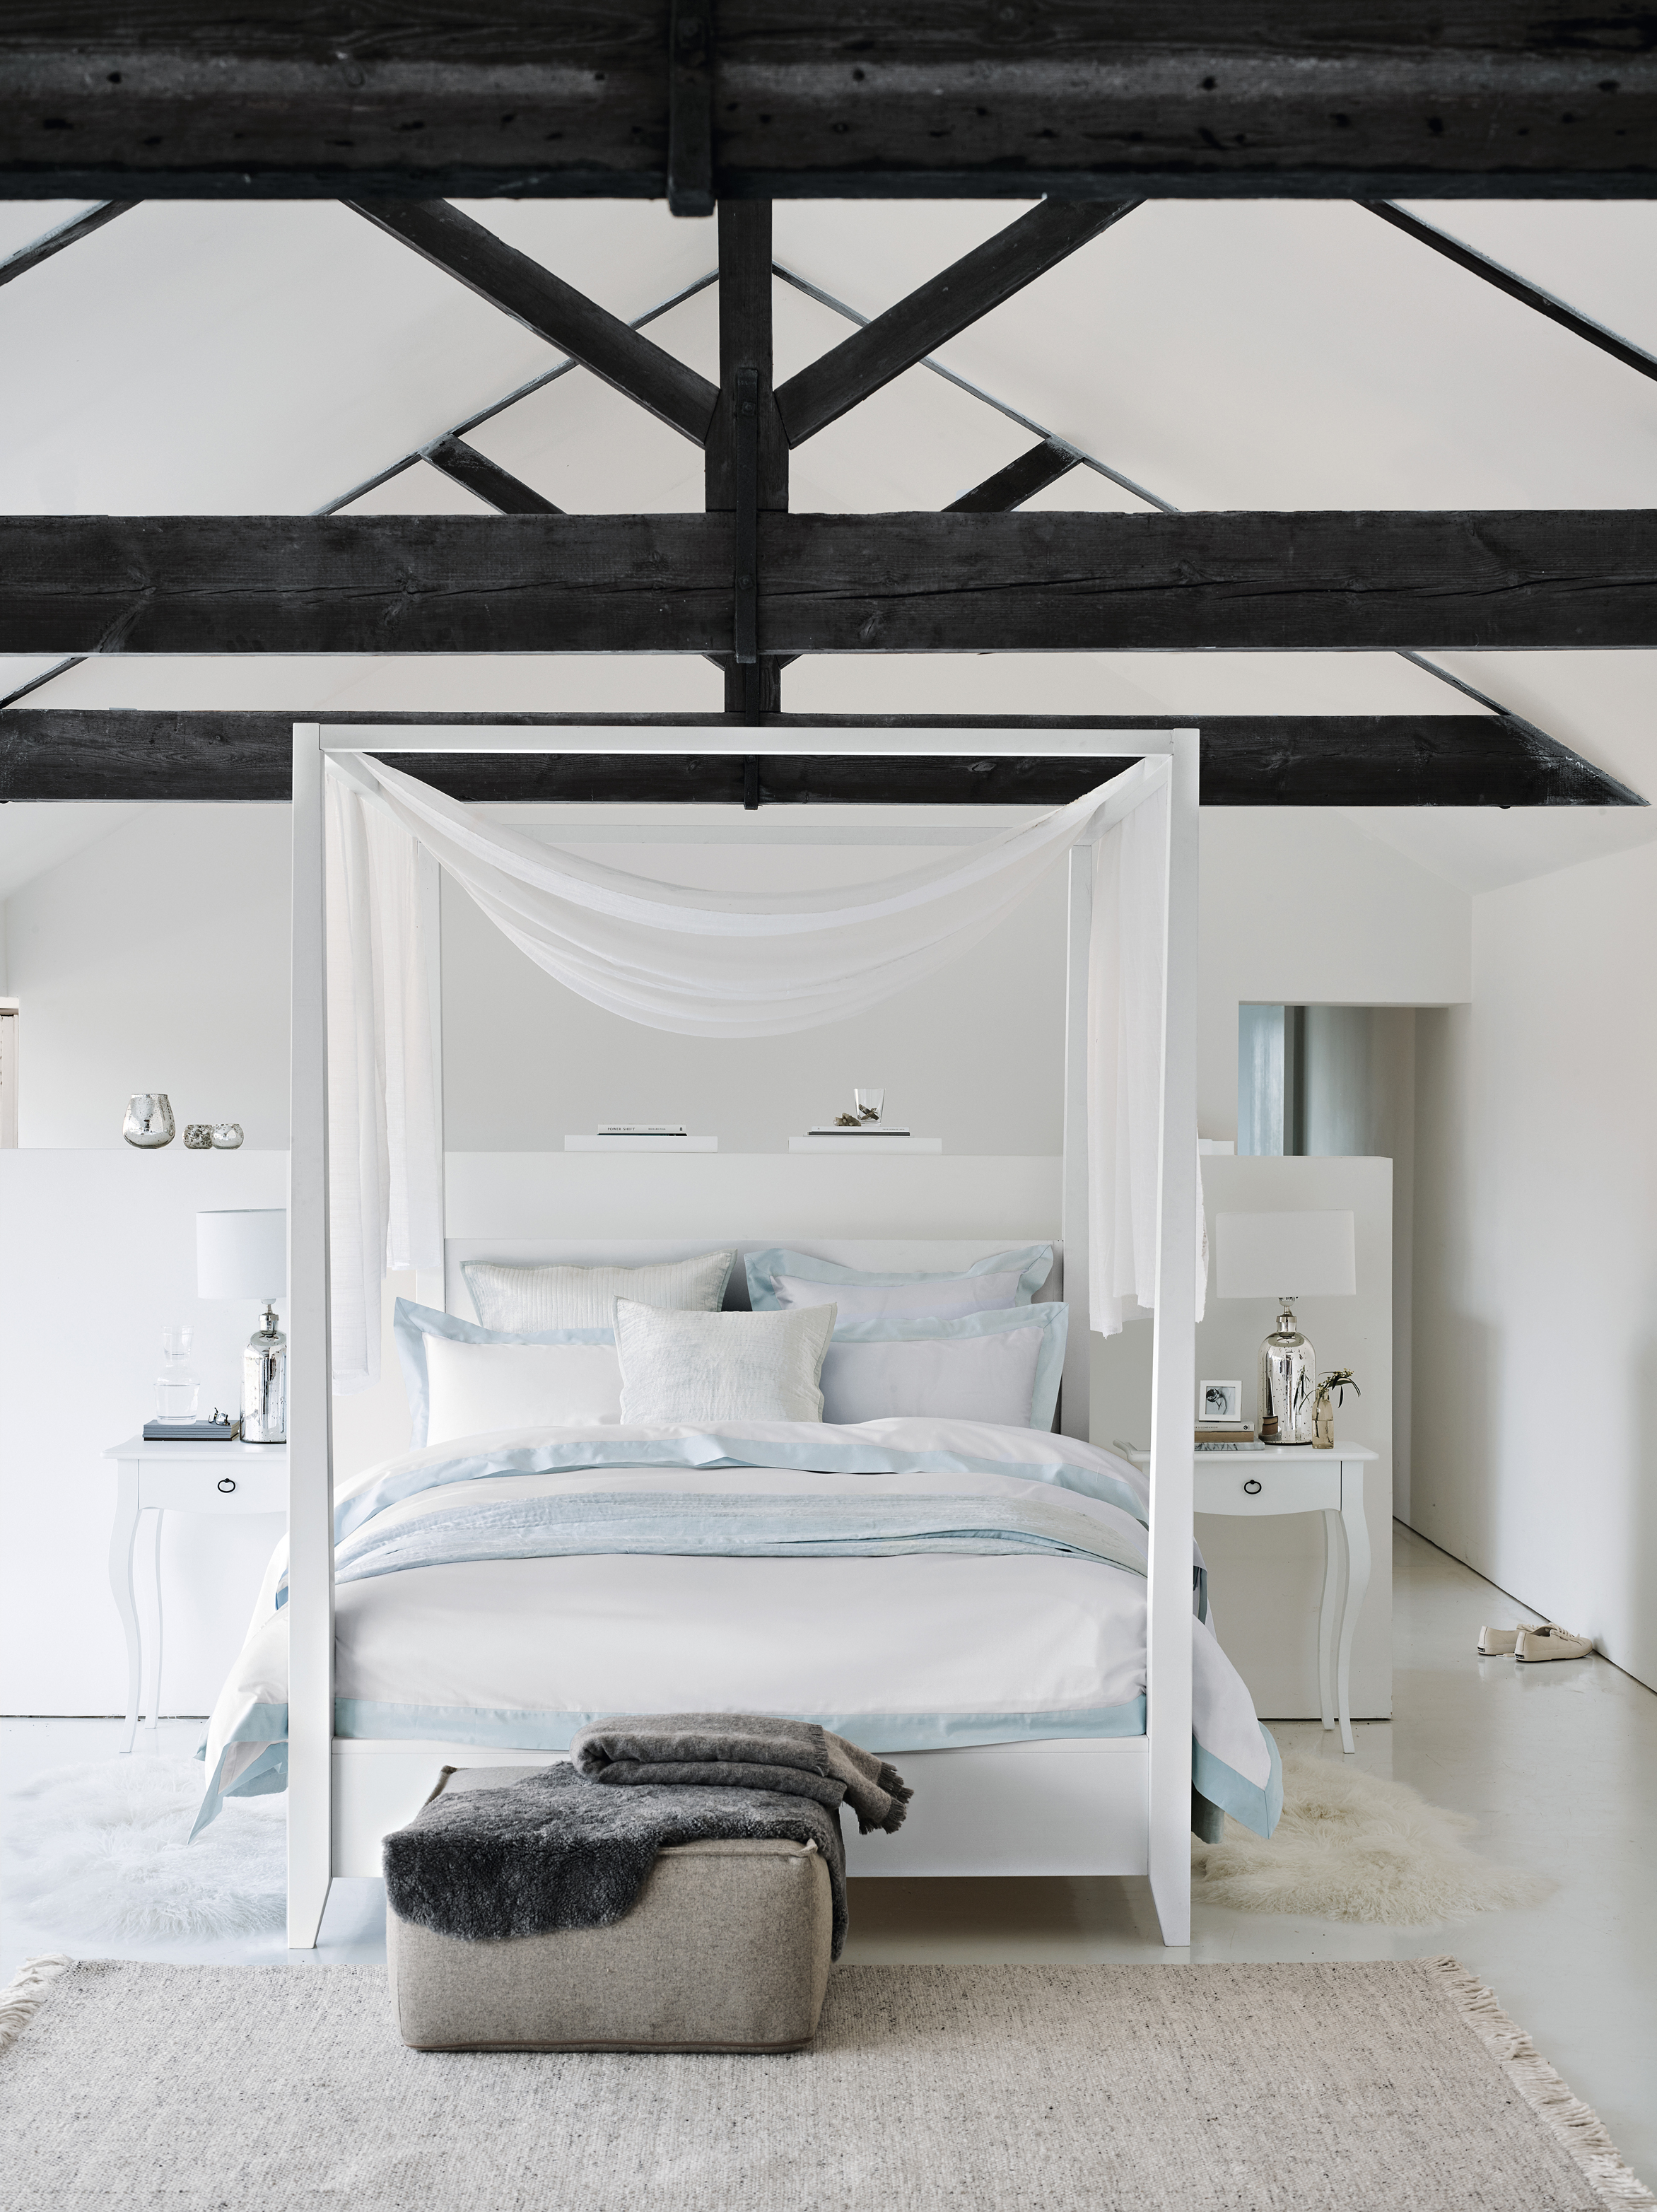 How To Create A Calm Tranquil Home According To The White Company S Chrissie Rucker